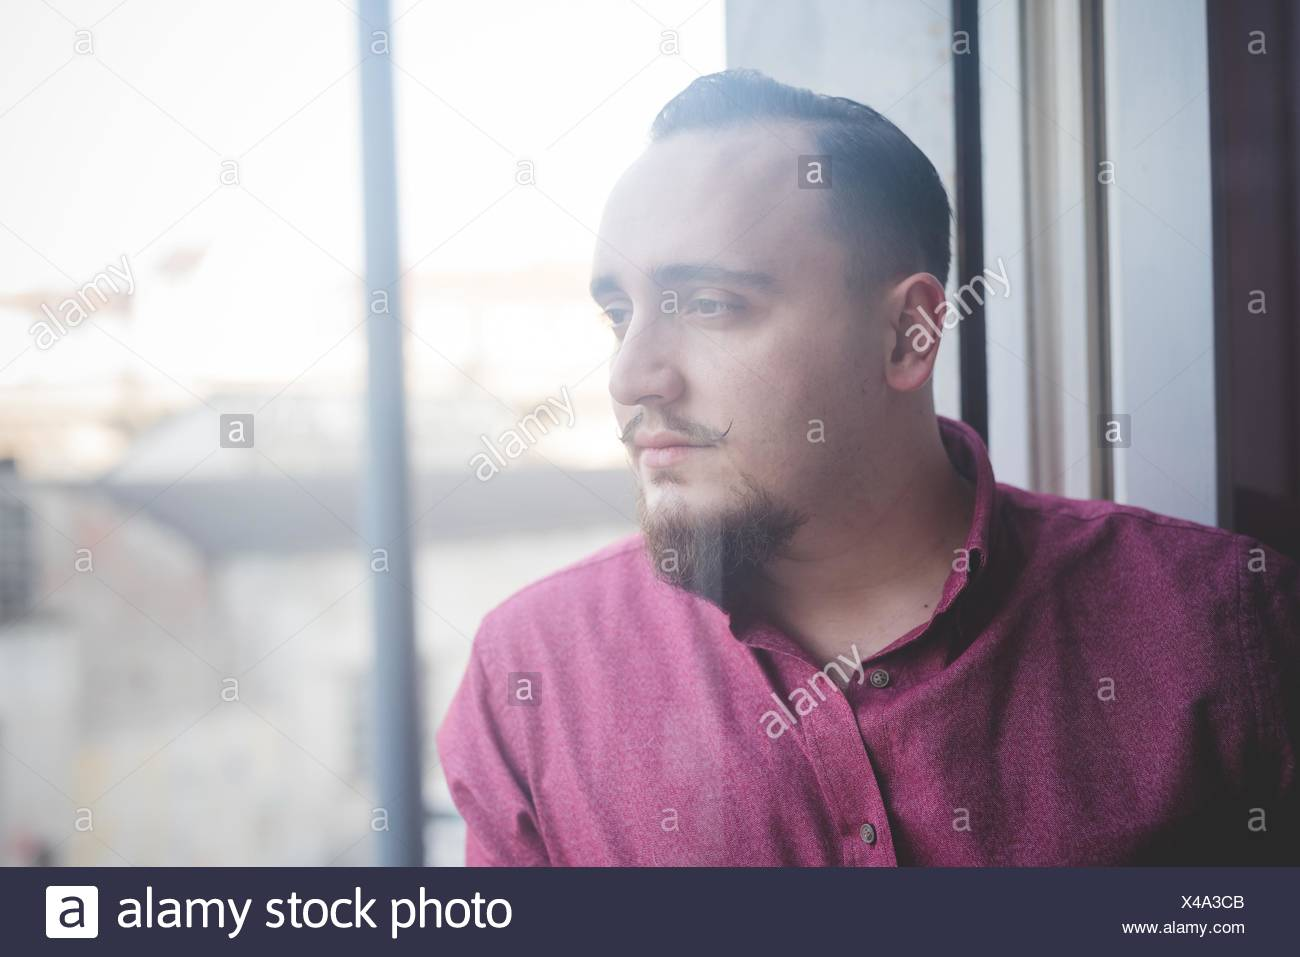 Portrait of young man by window - Stock Image